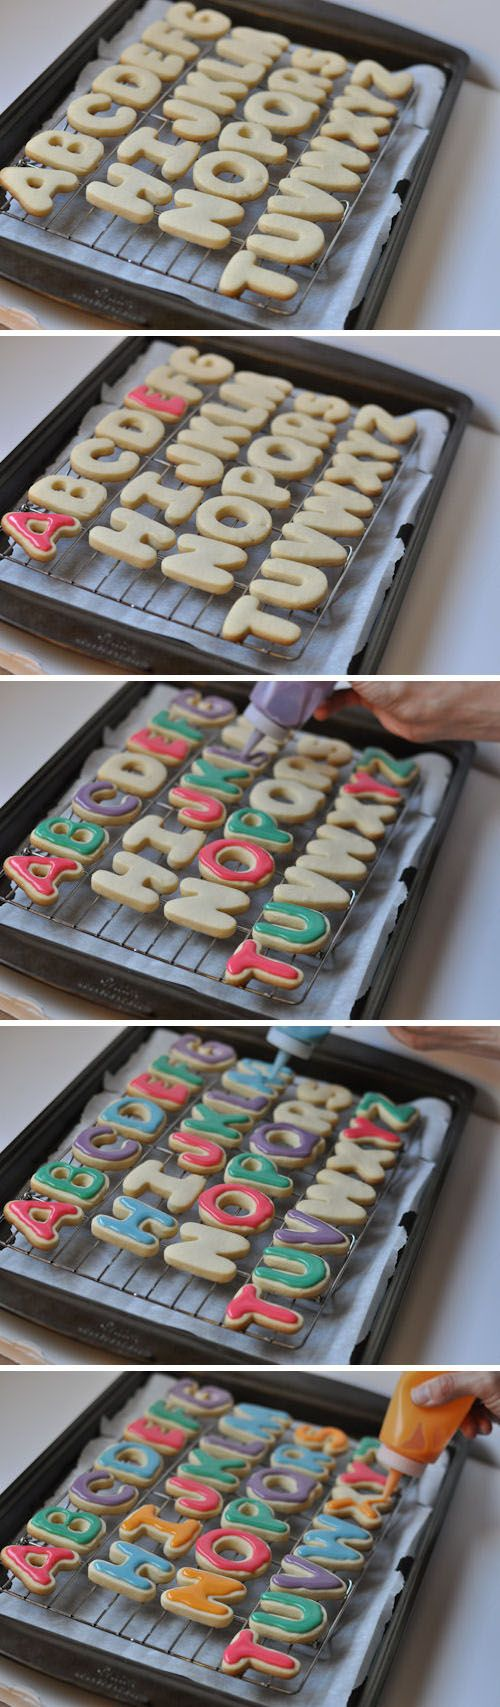 Alphabet Cookies... love these and love the idea of using squeeze bottles to ice them